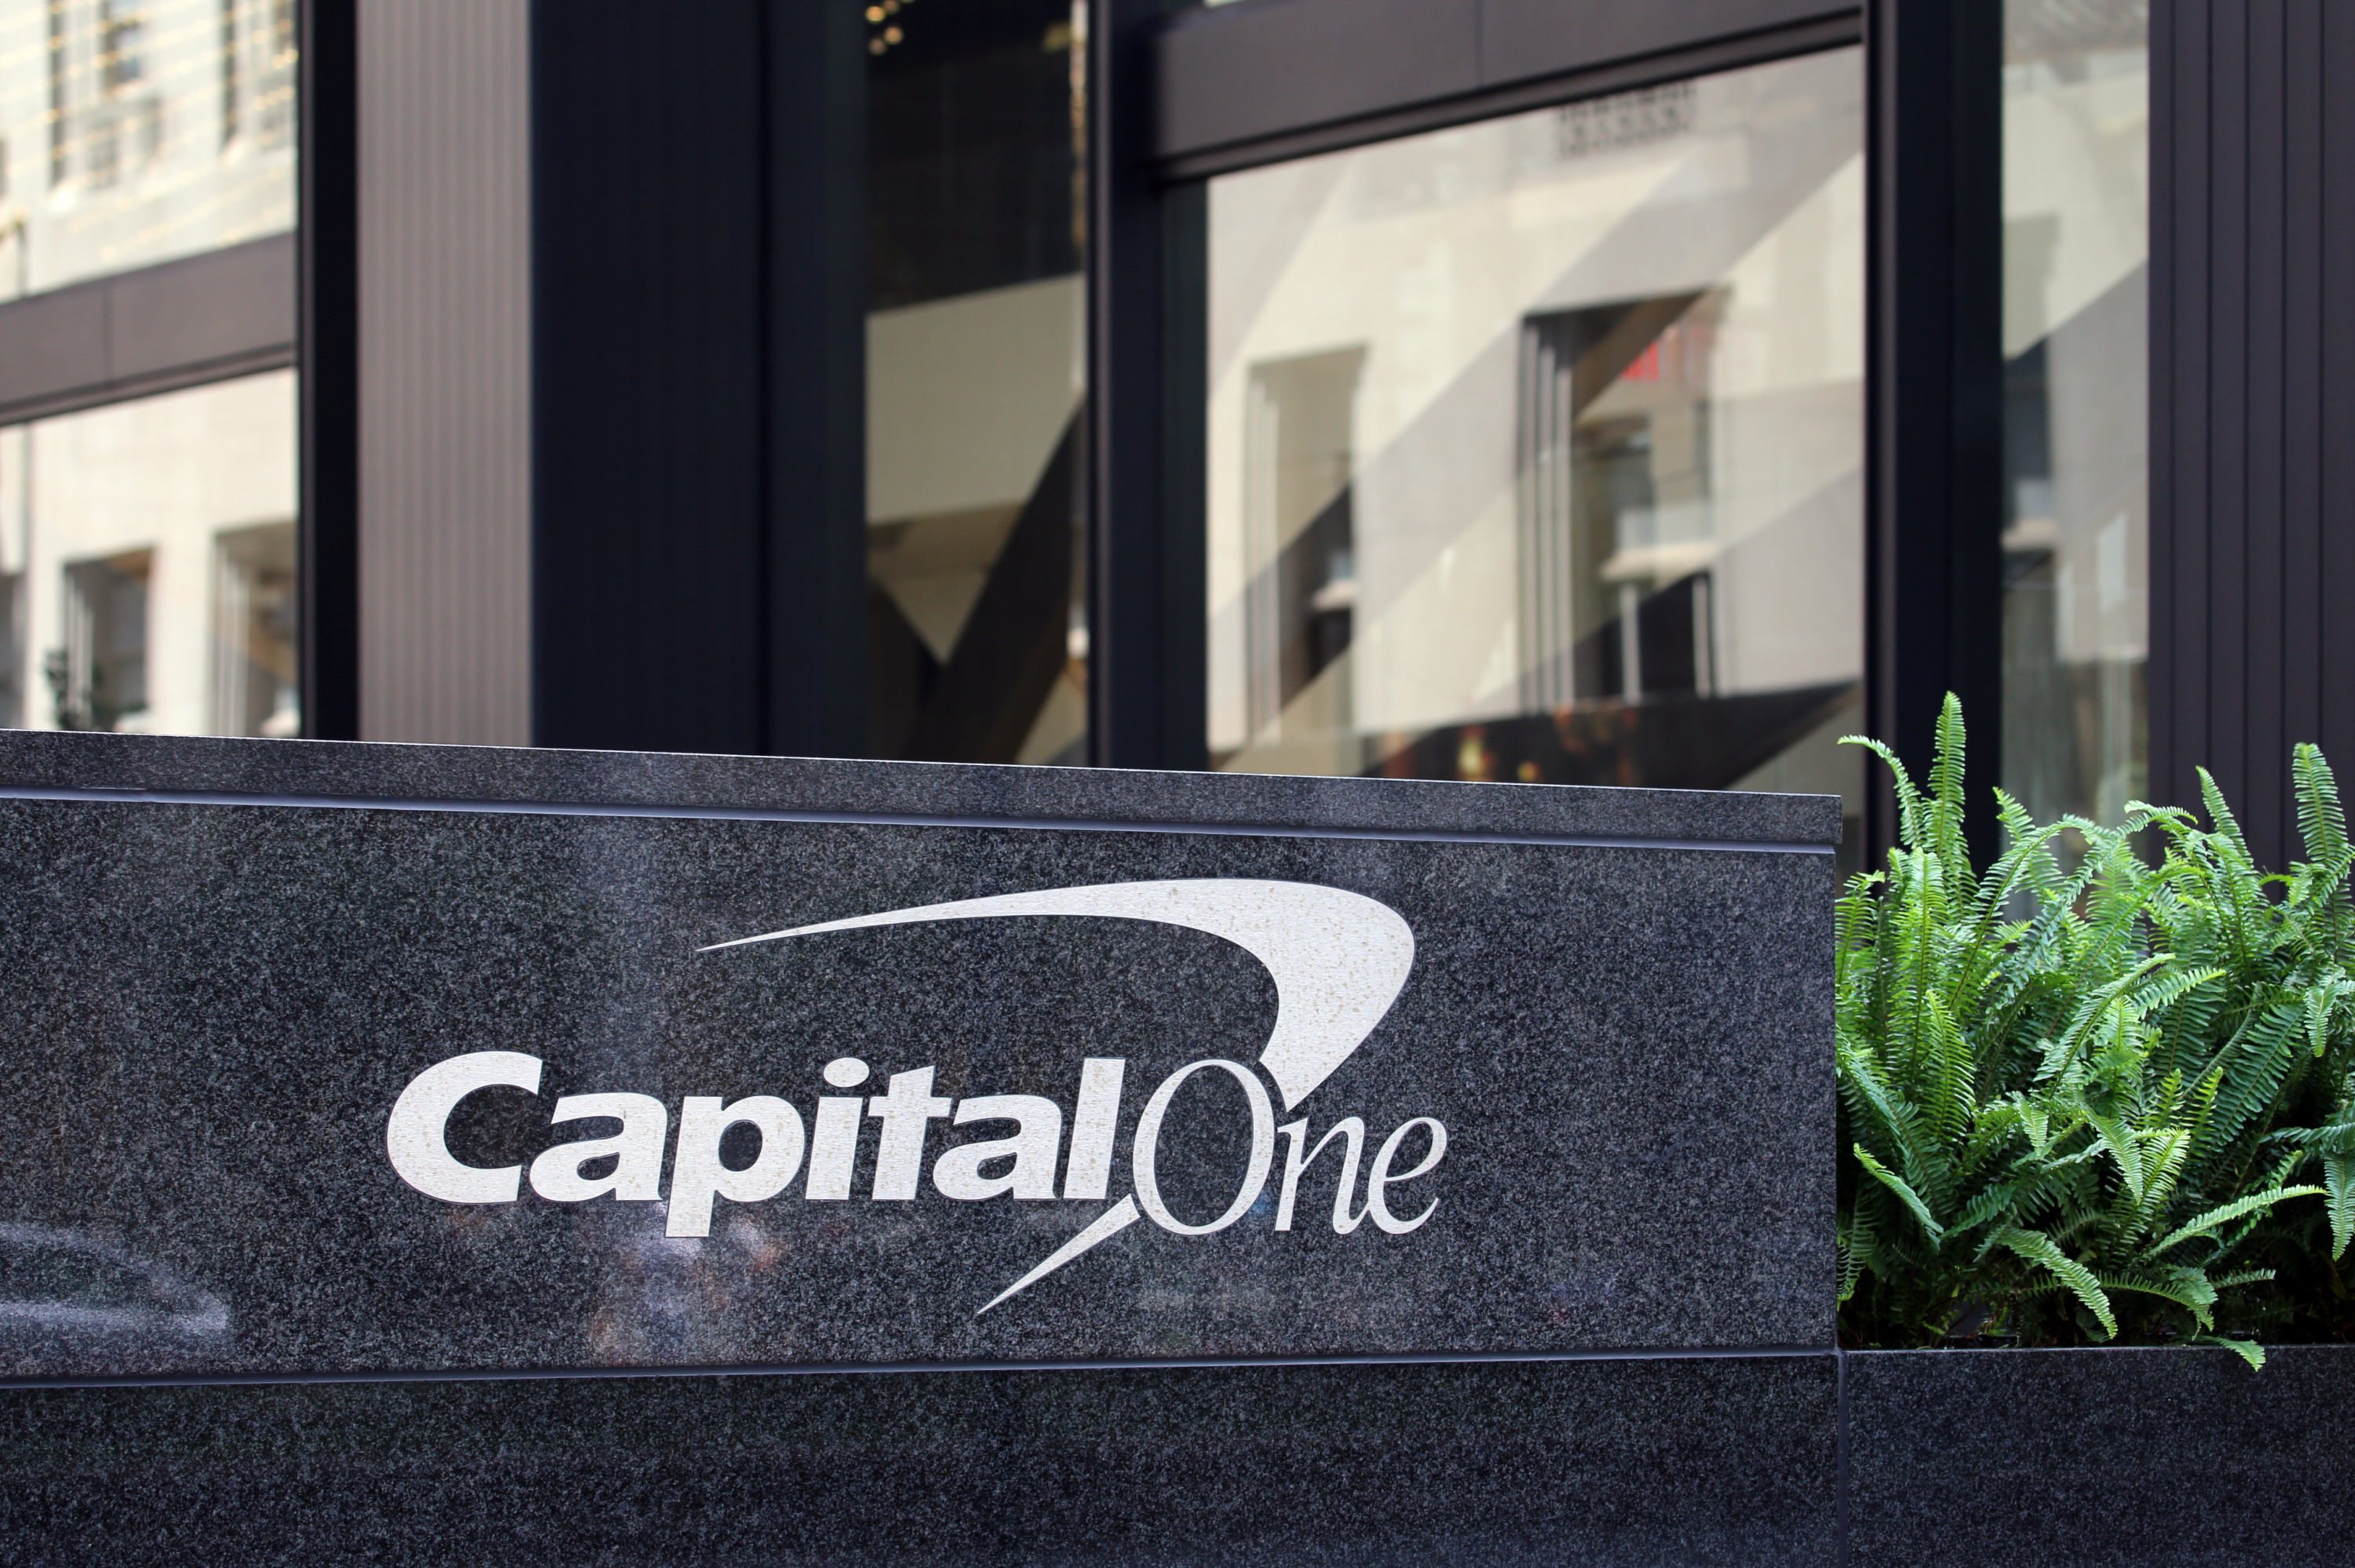 Capital one credit card frequent flyer miles